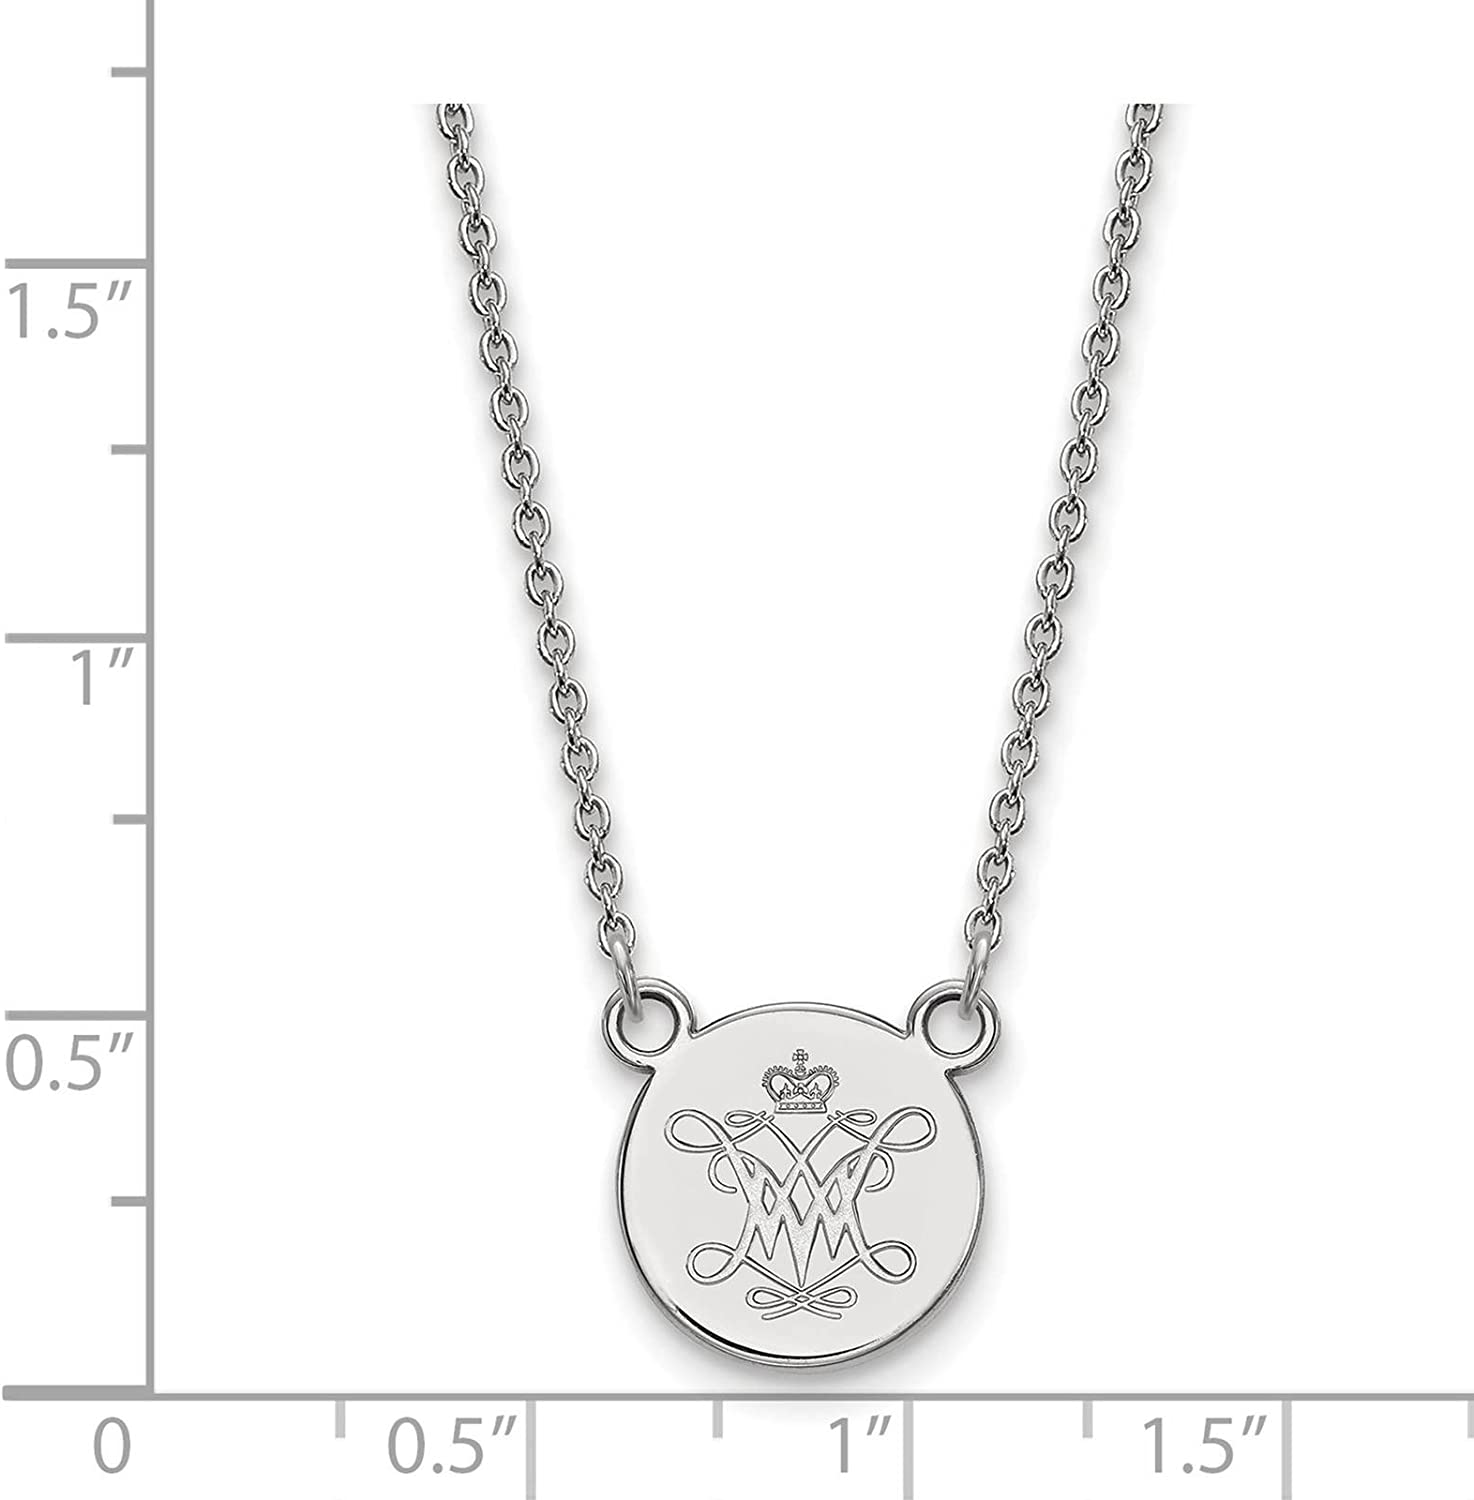 925 Sterling Silver Rhodium-plated Laser-cut University of Alabama Small Pendant